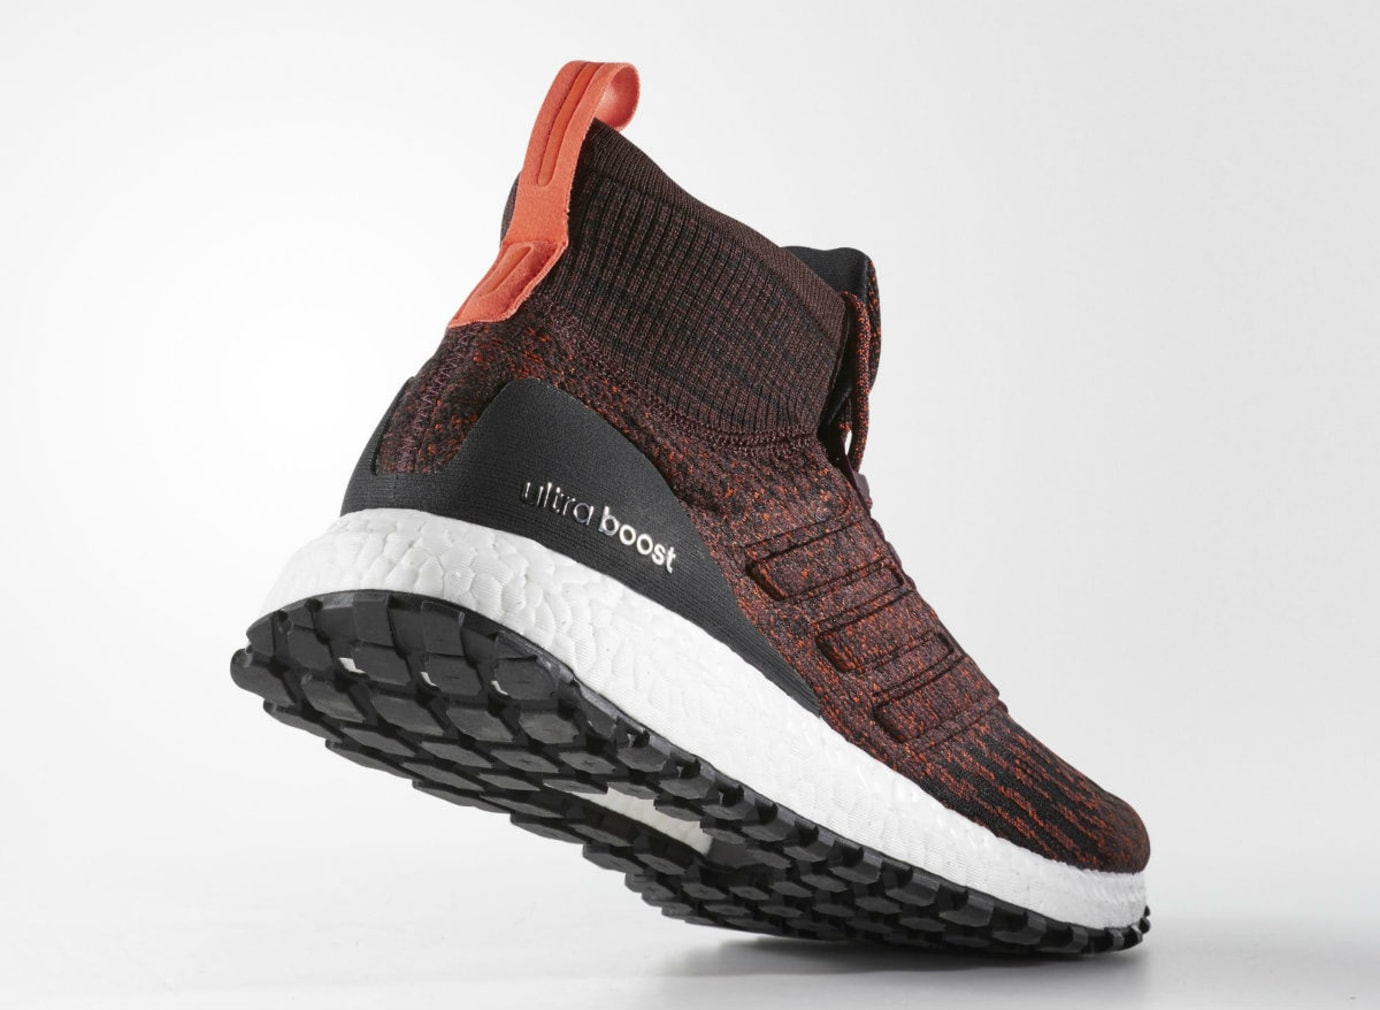 new style 2f334 52de3 Adidas Ultra Boost ATR Mid Oreo Burgundy Release Date S82035 ...